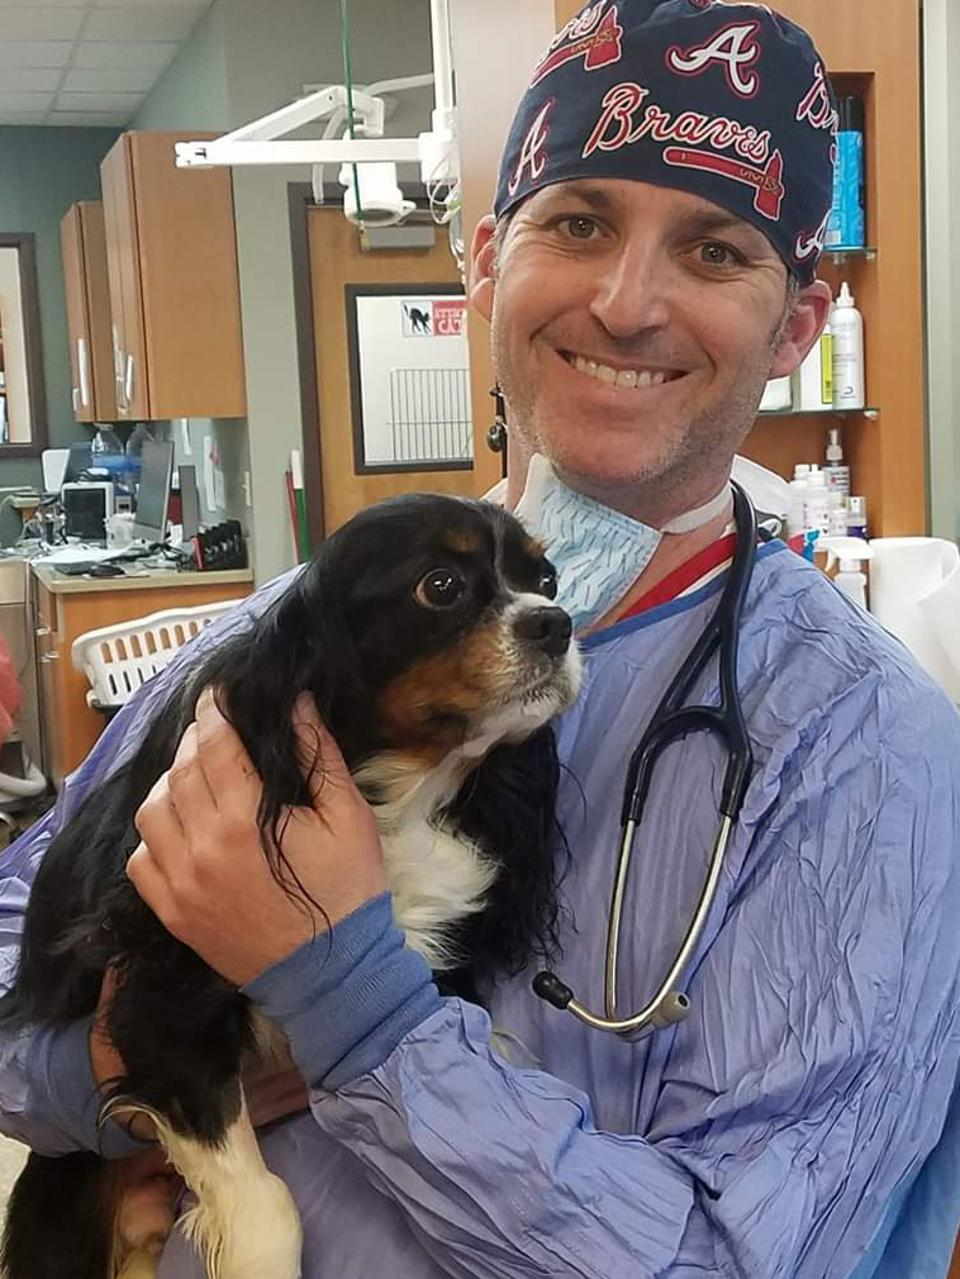 Veterinarian Jeff Bloomberg smiling while holding a dog patient.